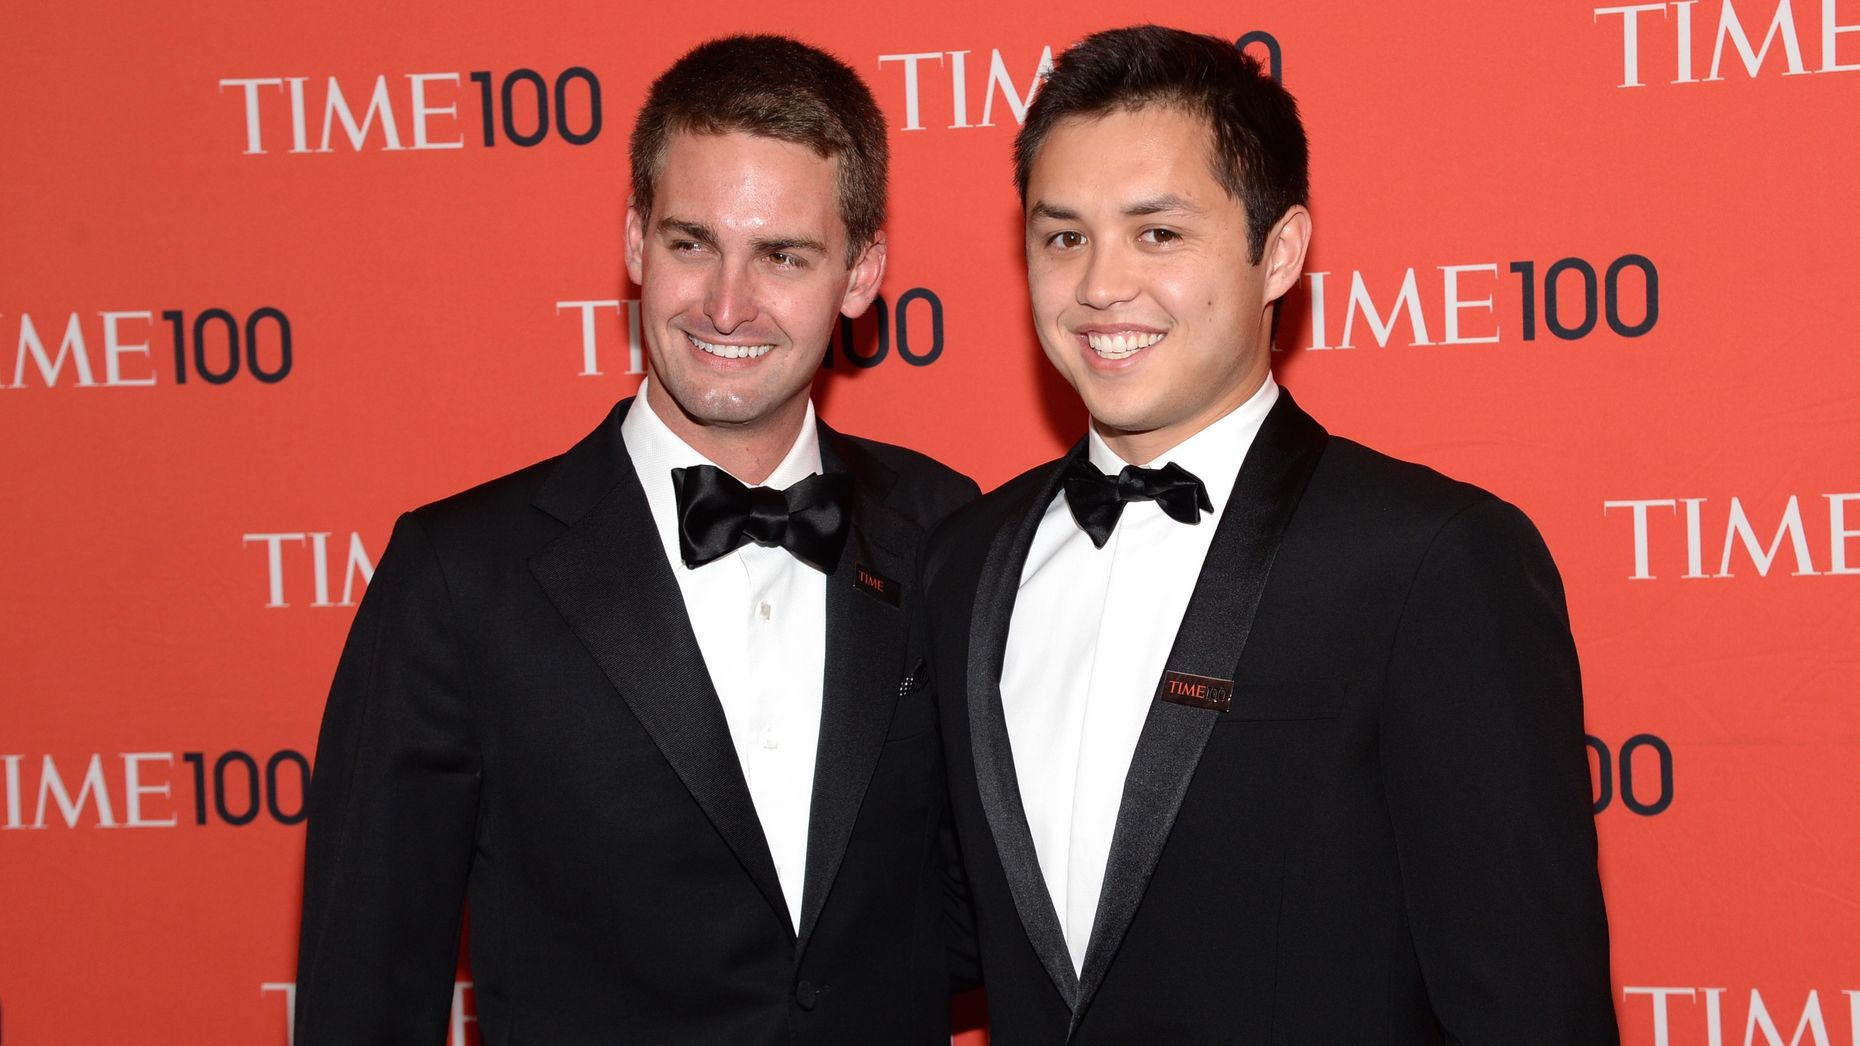 Snap's co-founders Evan Spiegel and Bobby Murphy. Photo by AP.